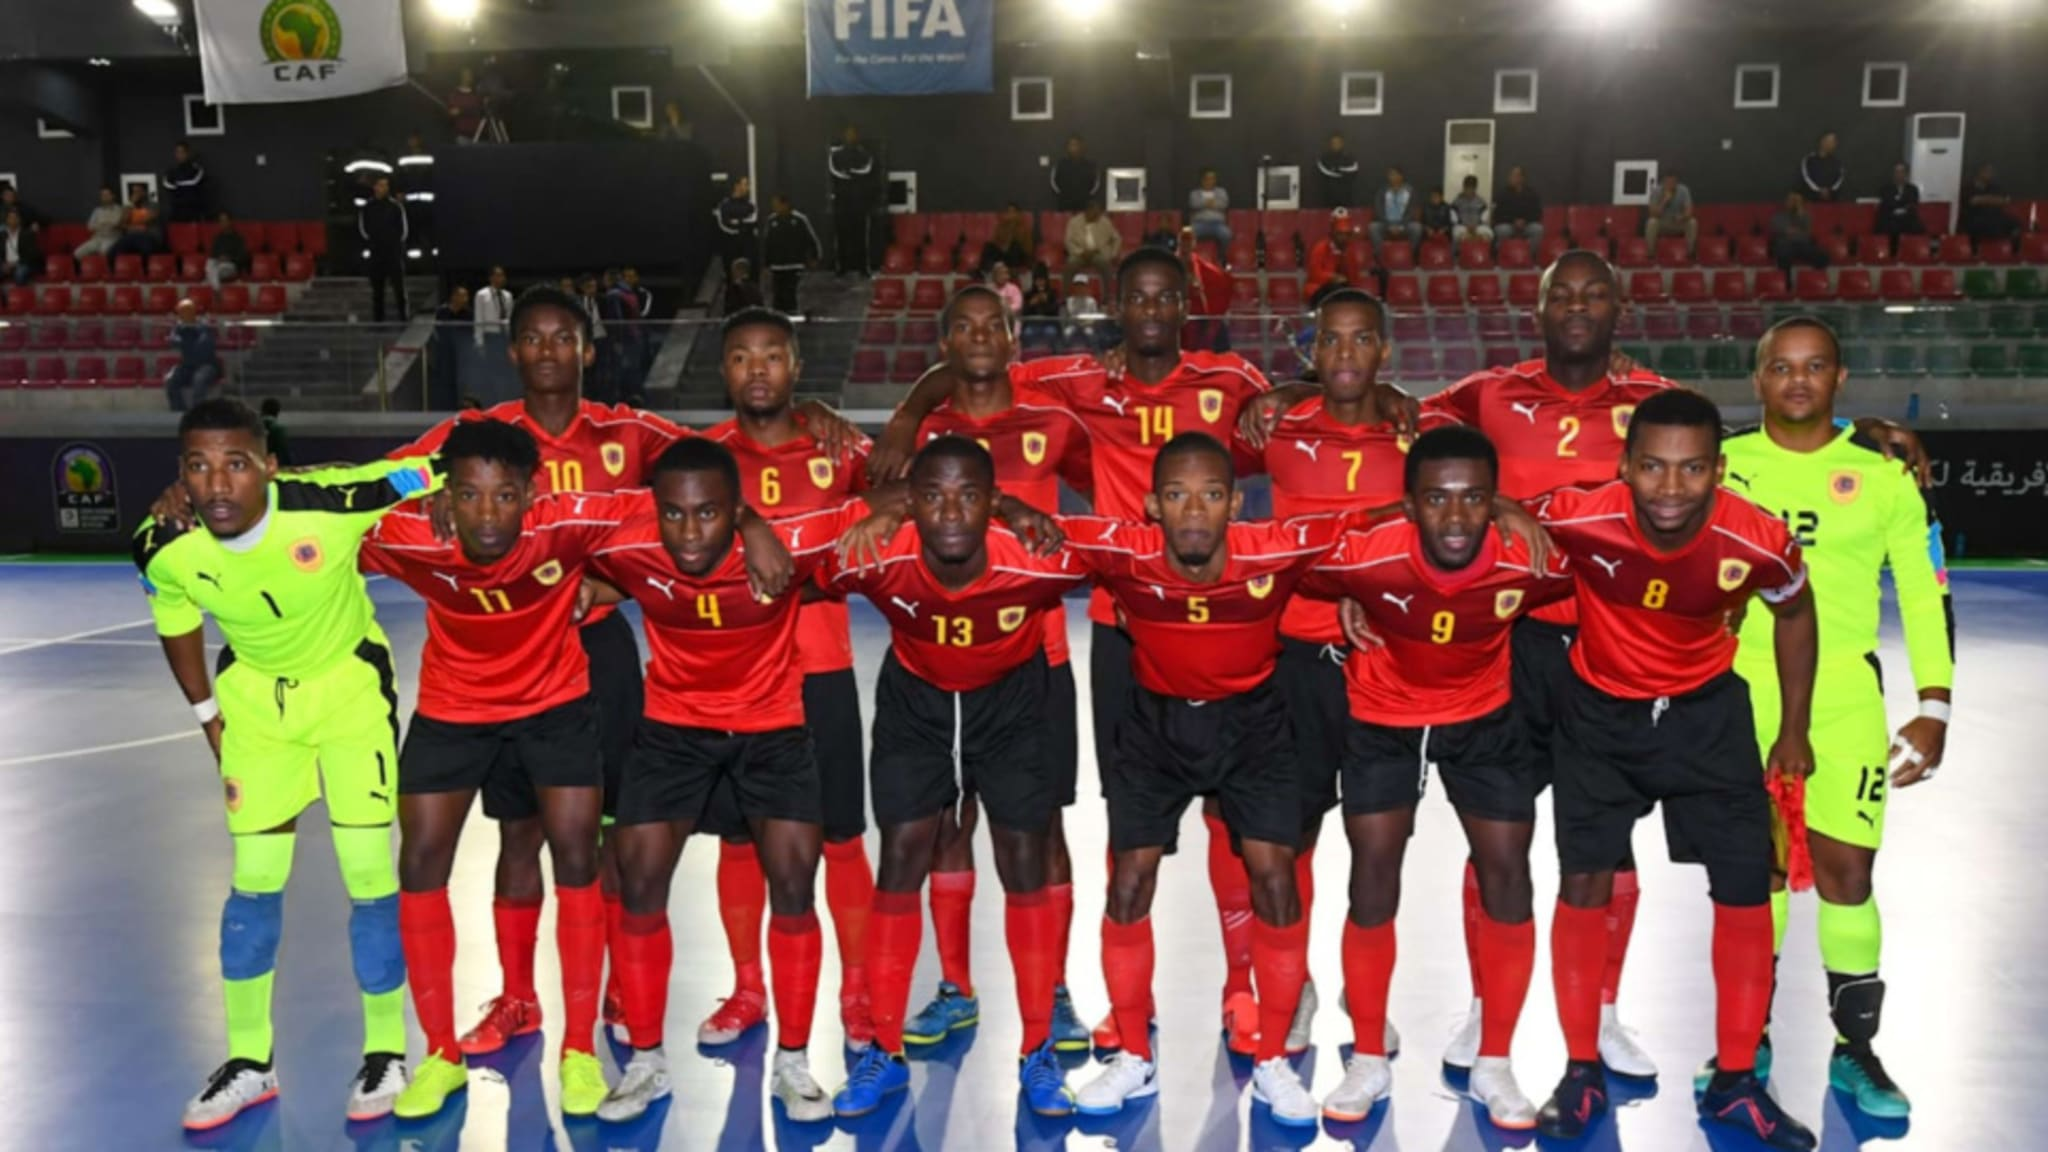 A vision for the future of futsal in Angola, Africa and beyond